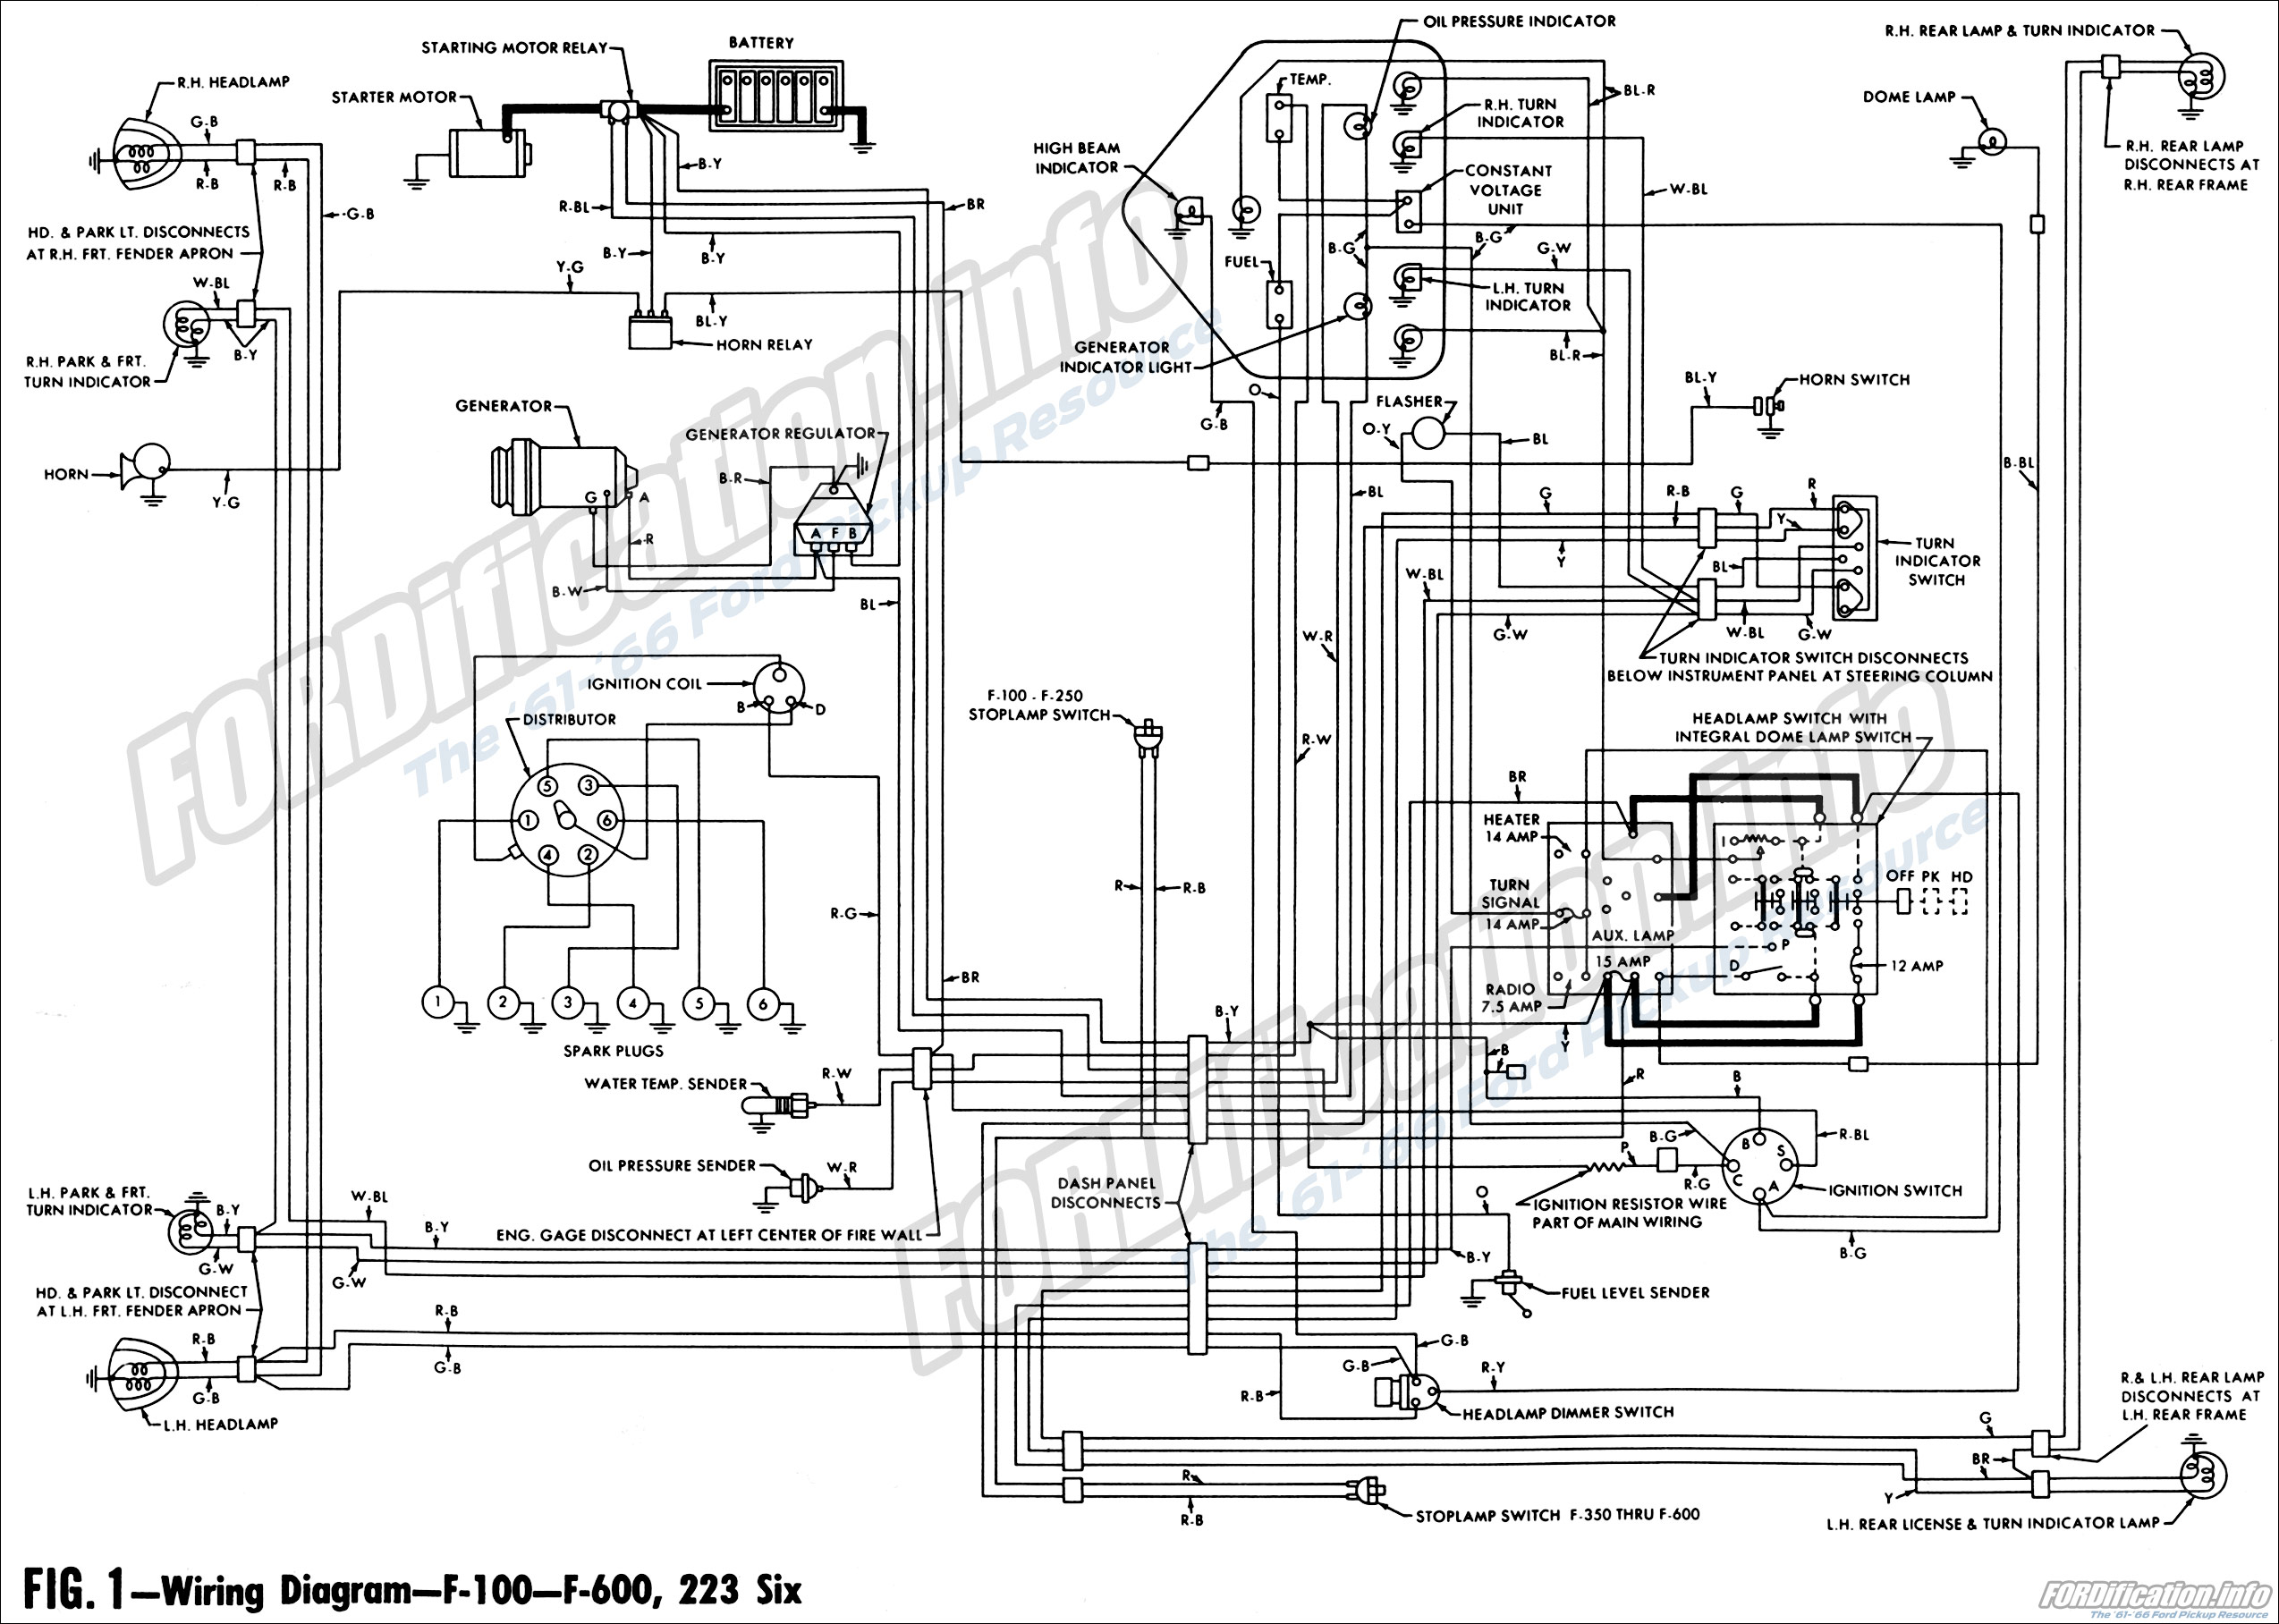 1961 Ford Truck Wiring Diagrams - FORDification.info - The '61-'66 Ford  Pickup Resource | Wiring Schematic For 1963 Ford F100 |  | FORDification.info